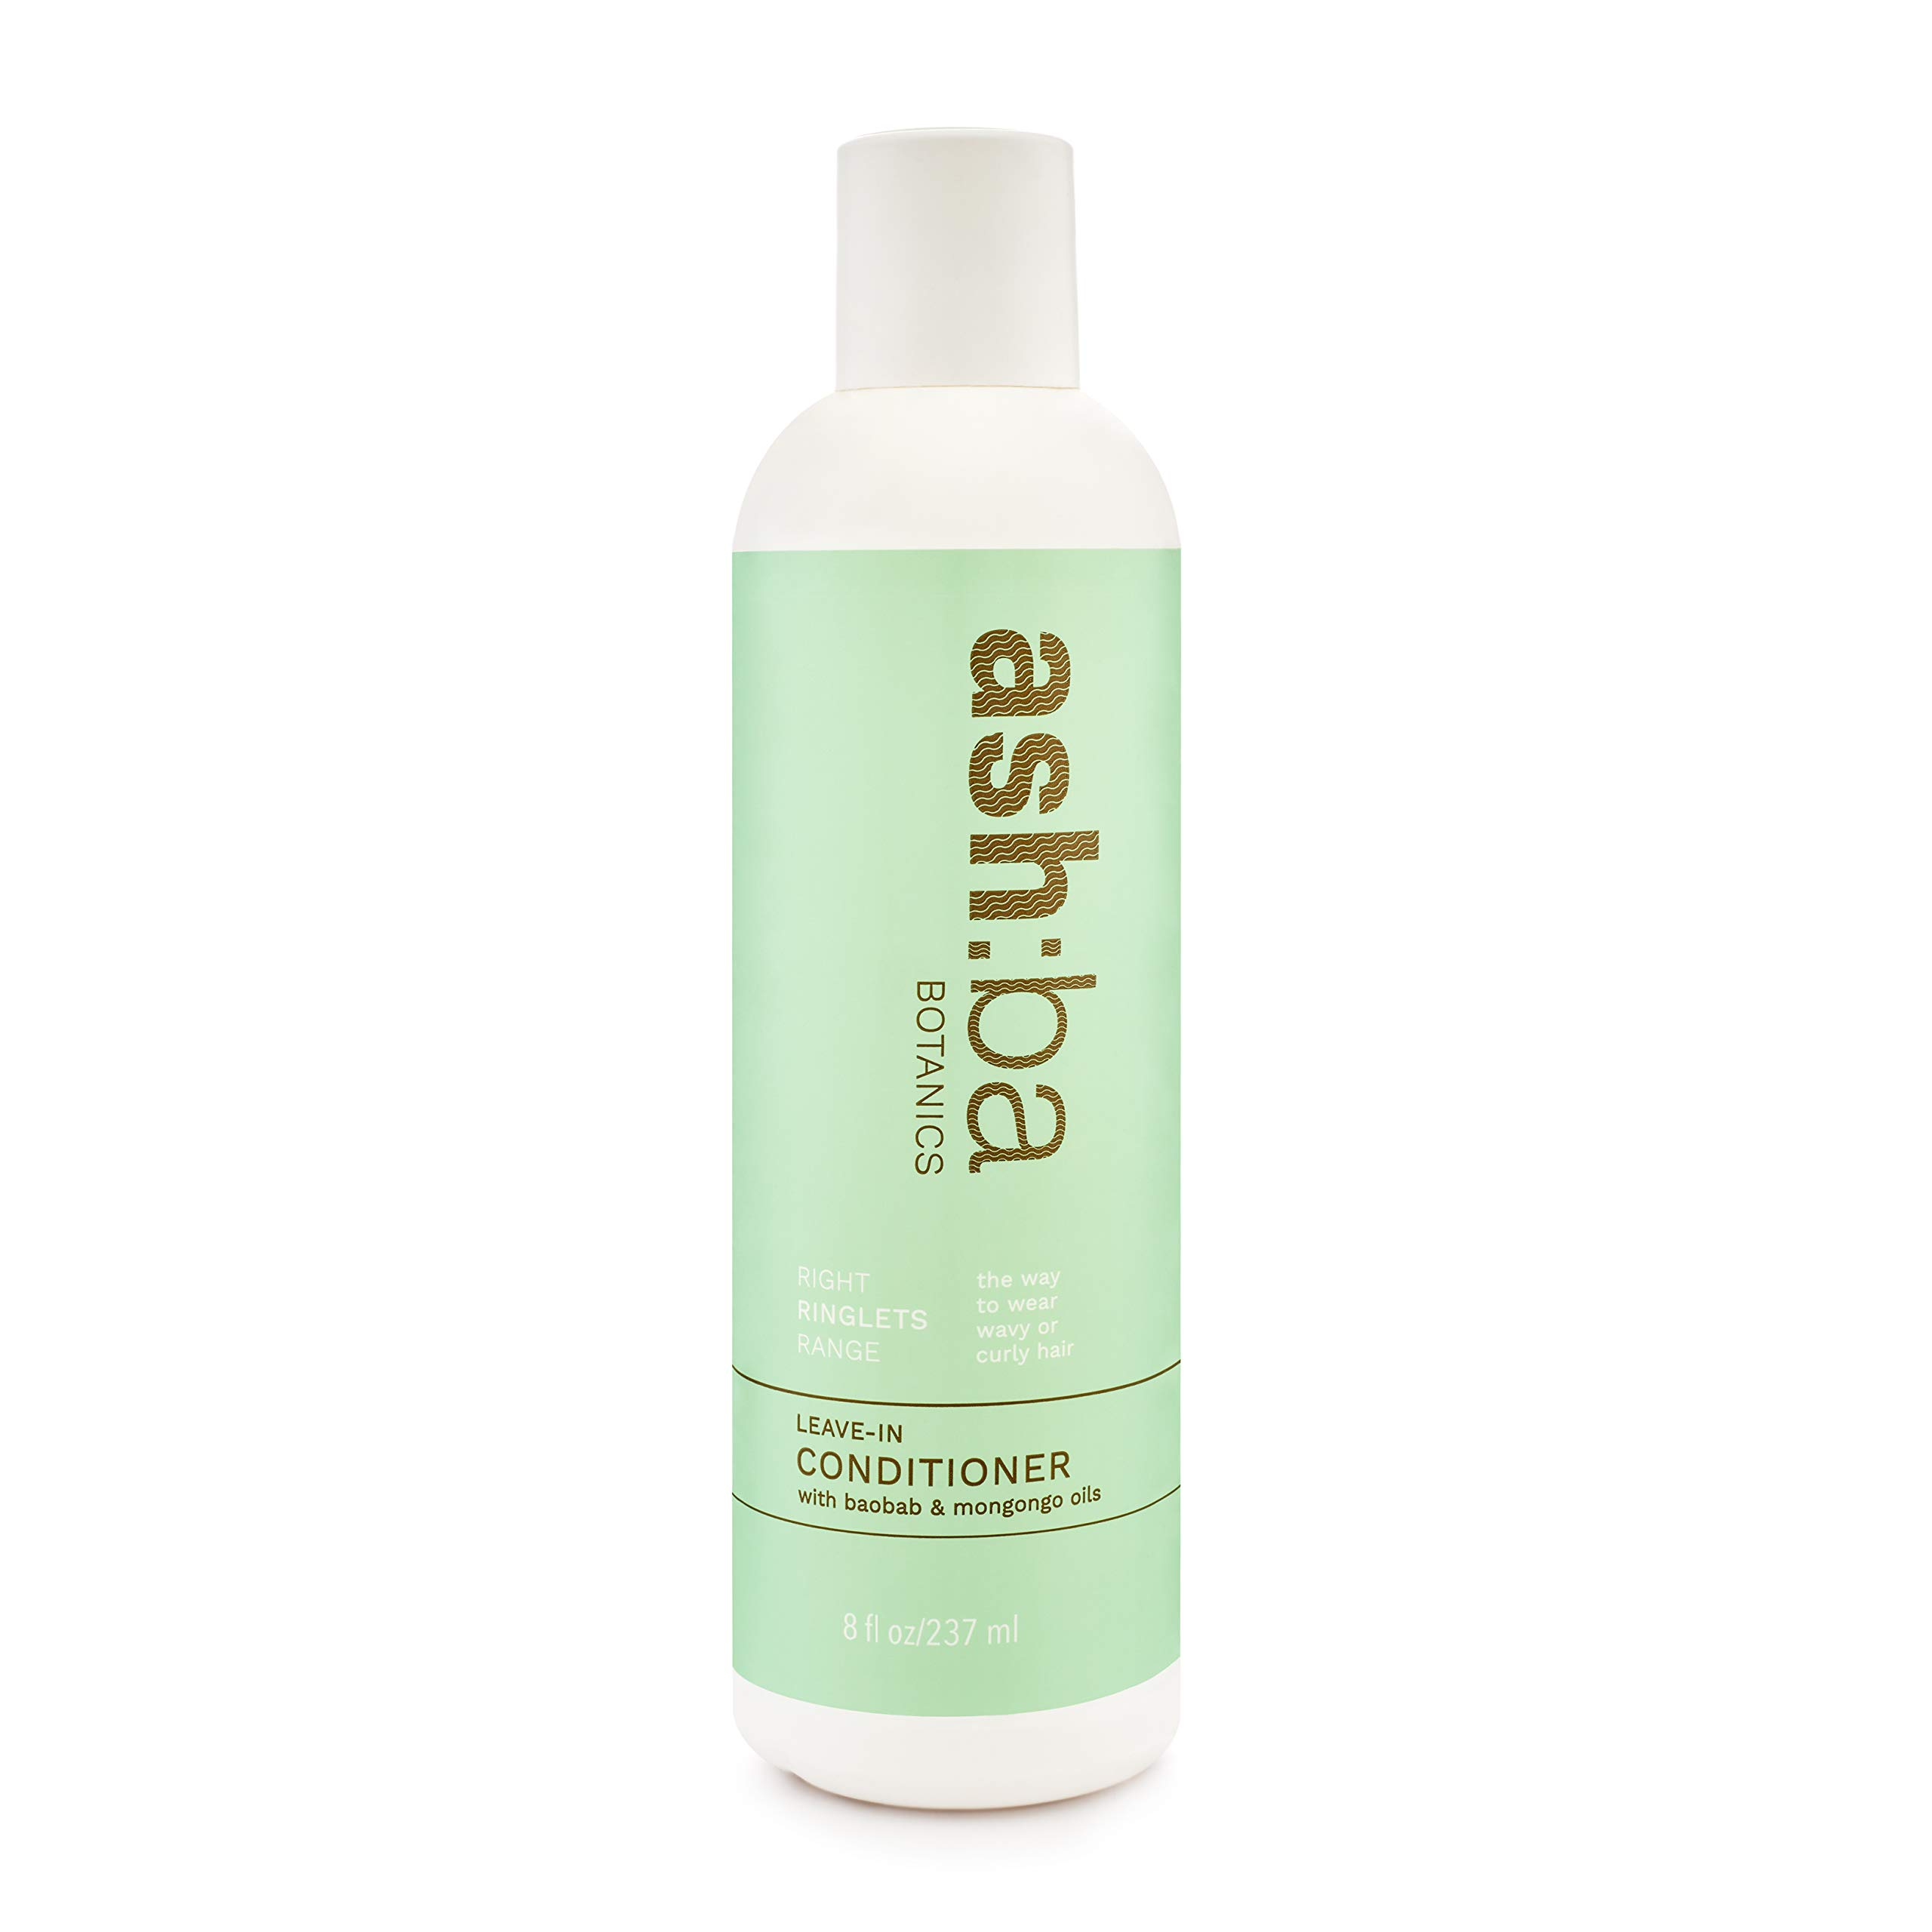 Ashba Botanics Right Ringlets Leave-in Conditioner for Curly & Wavy Hair - Vegan, Cruelty-free - 237ml